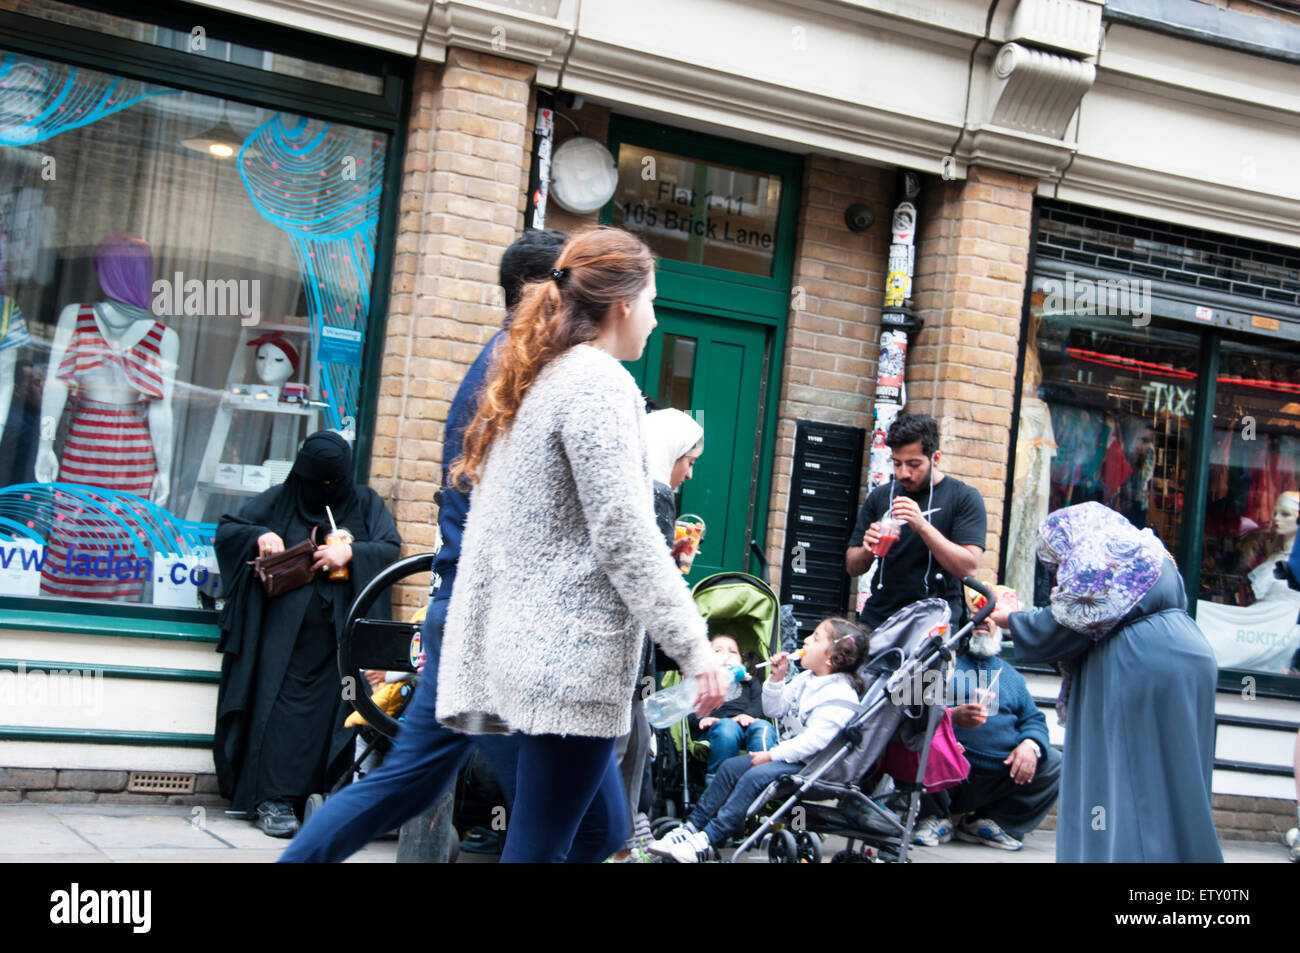 Brick Lane London 2015.On the street, Bangladeshi family and passers by in front of Rokit clothes shop - Stock Image